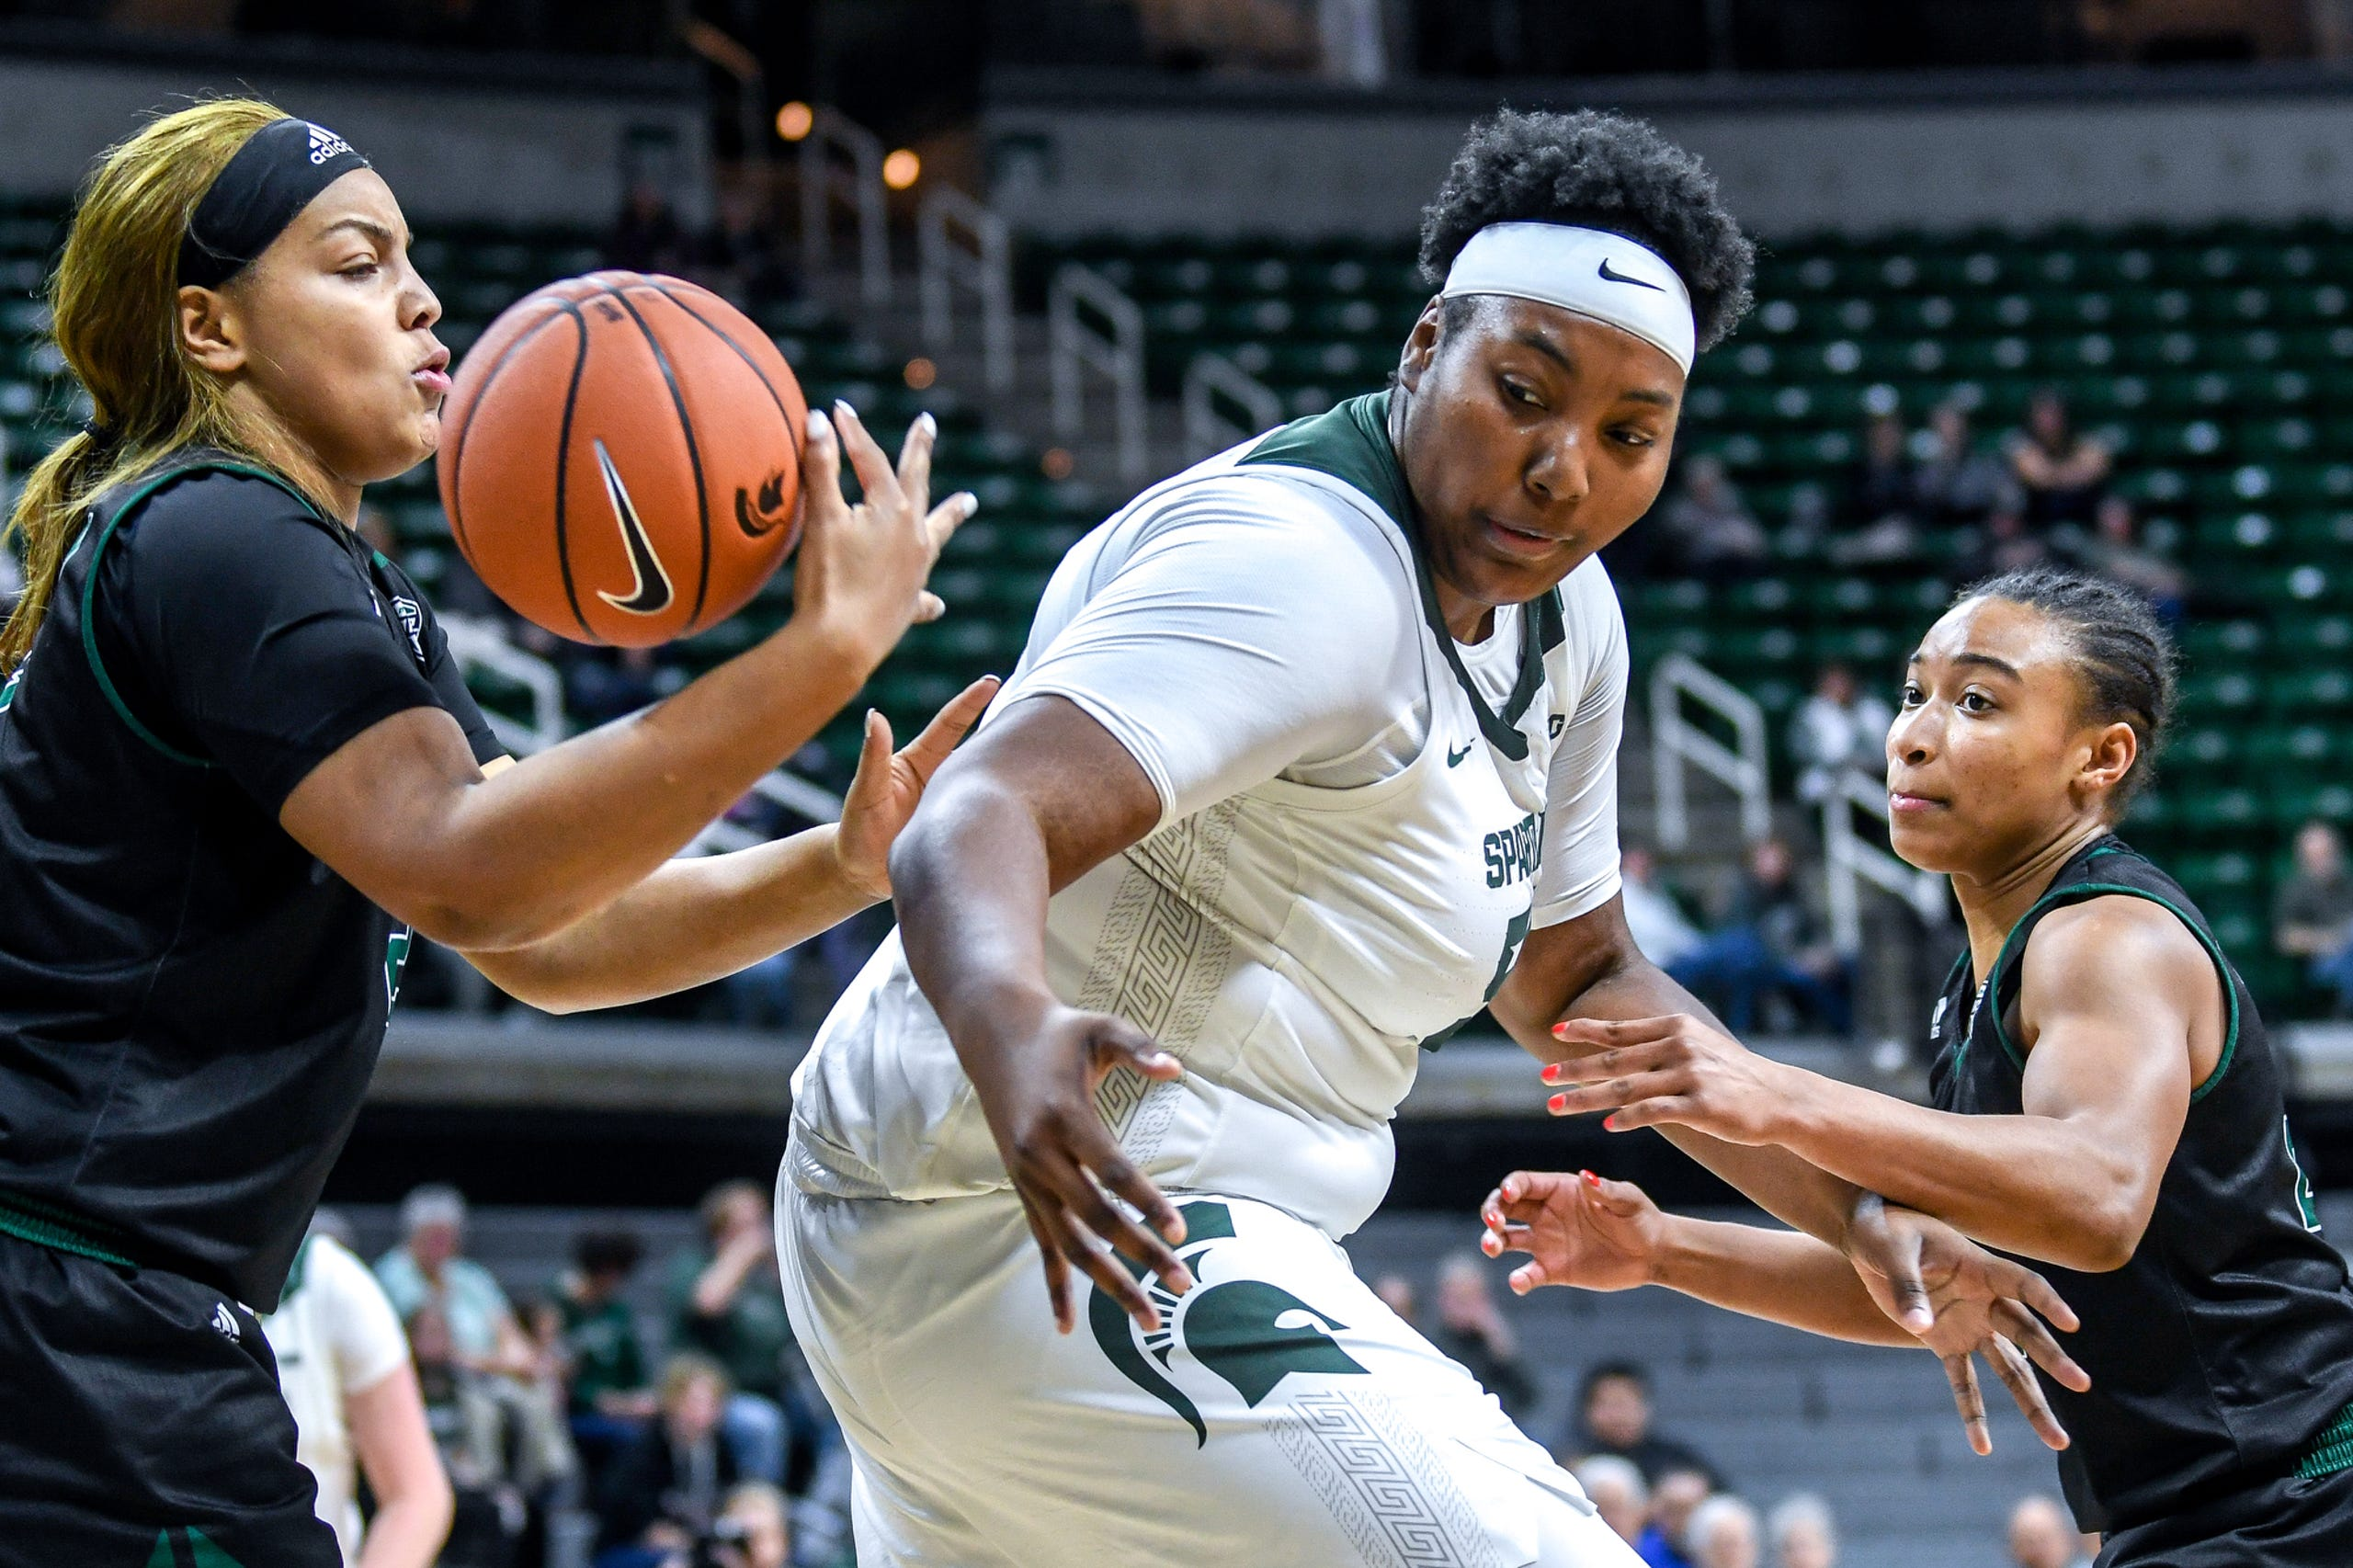 Michigan State's Cydni Dodd, center, goes for a rebound between Eastern Michigan's Laurel Jacqmain, left, and Constance Chaplin during the fourth quarter on Tuesday, Nov. 5, 2019, at the Breslin Center in East Lansing.